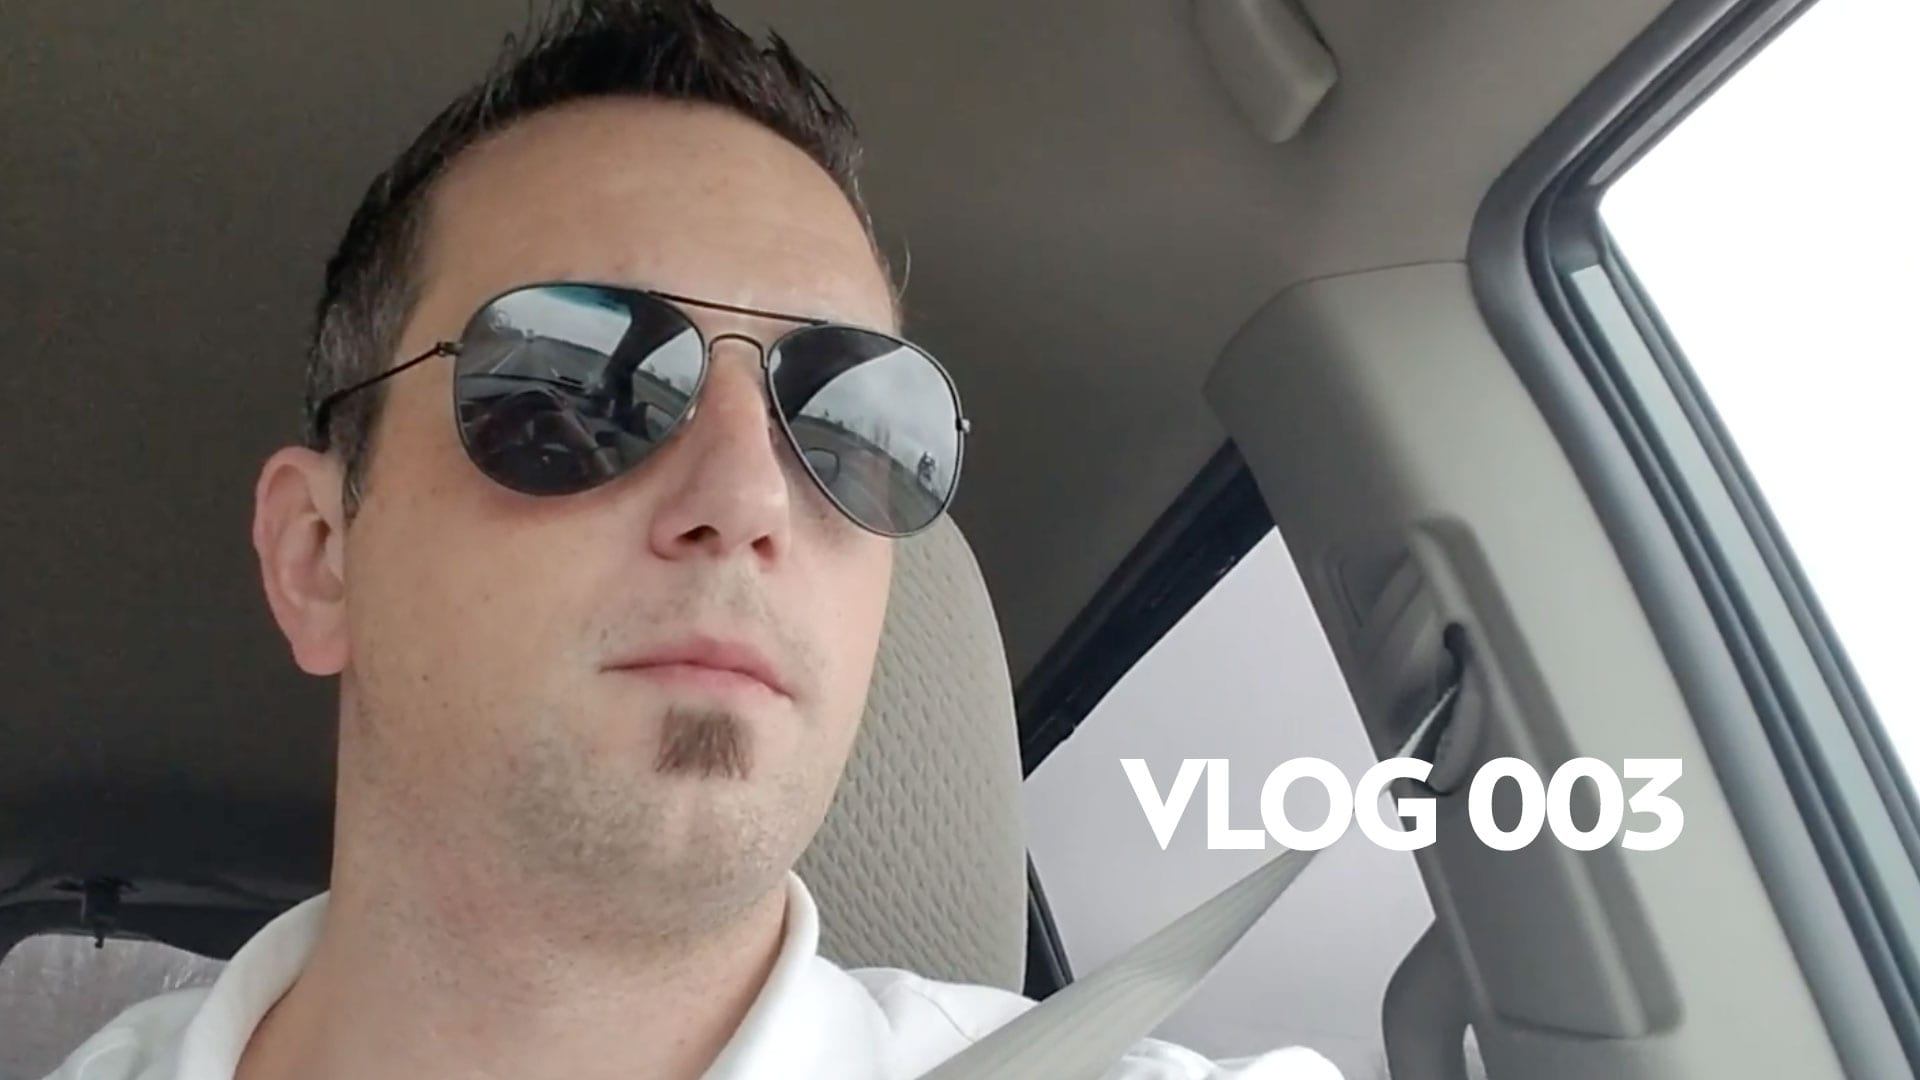 Vlog 003: I Think This is Illegal